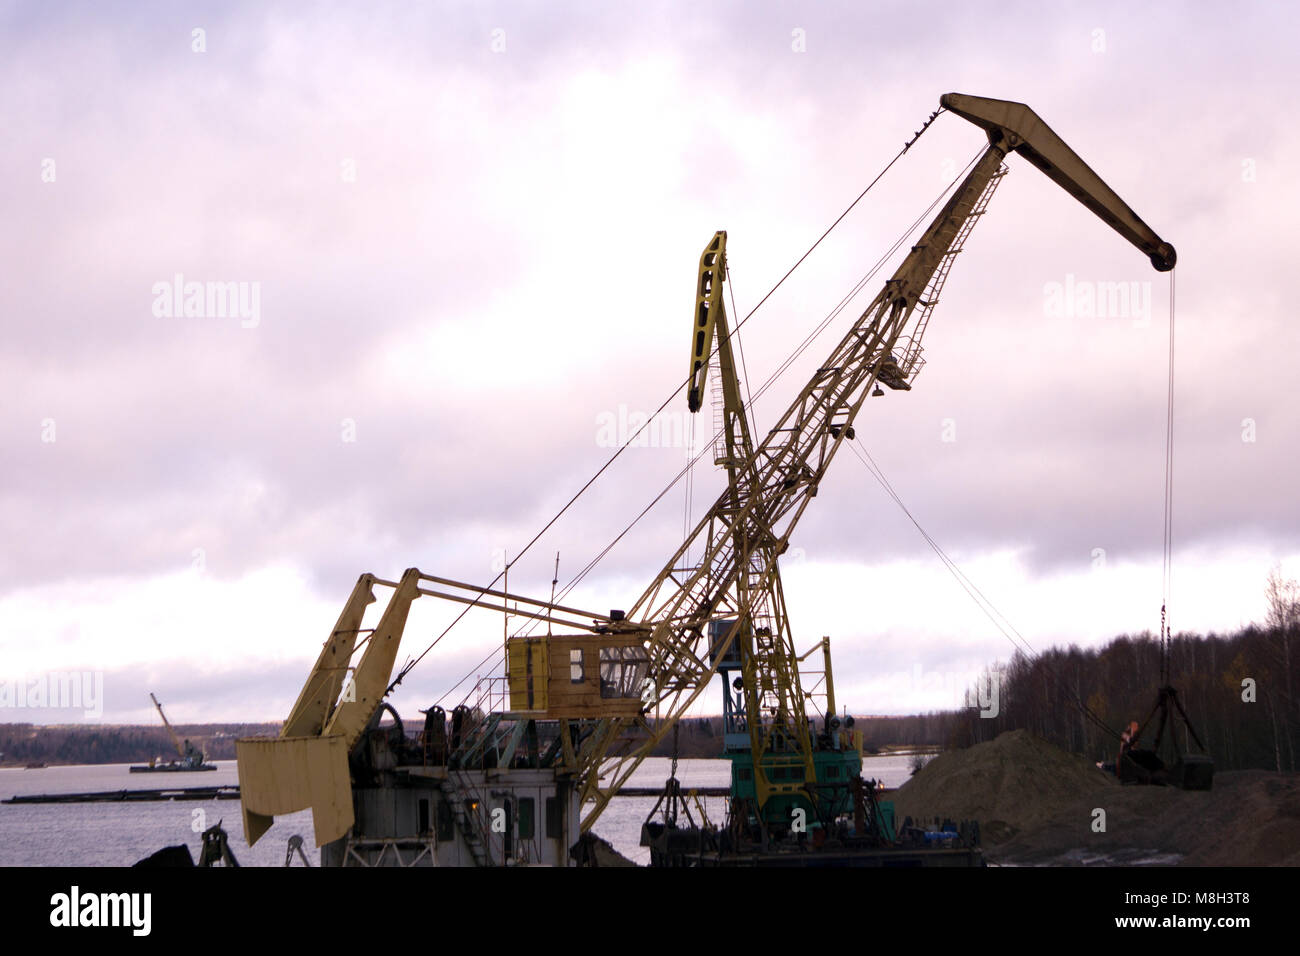 Large industrial tower car floating crane tower . - Stock Image